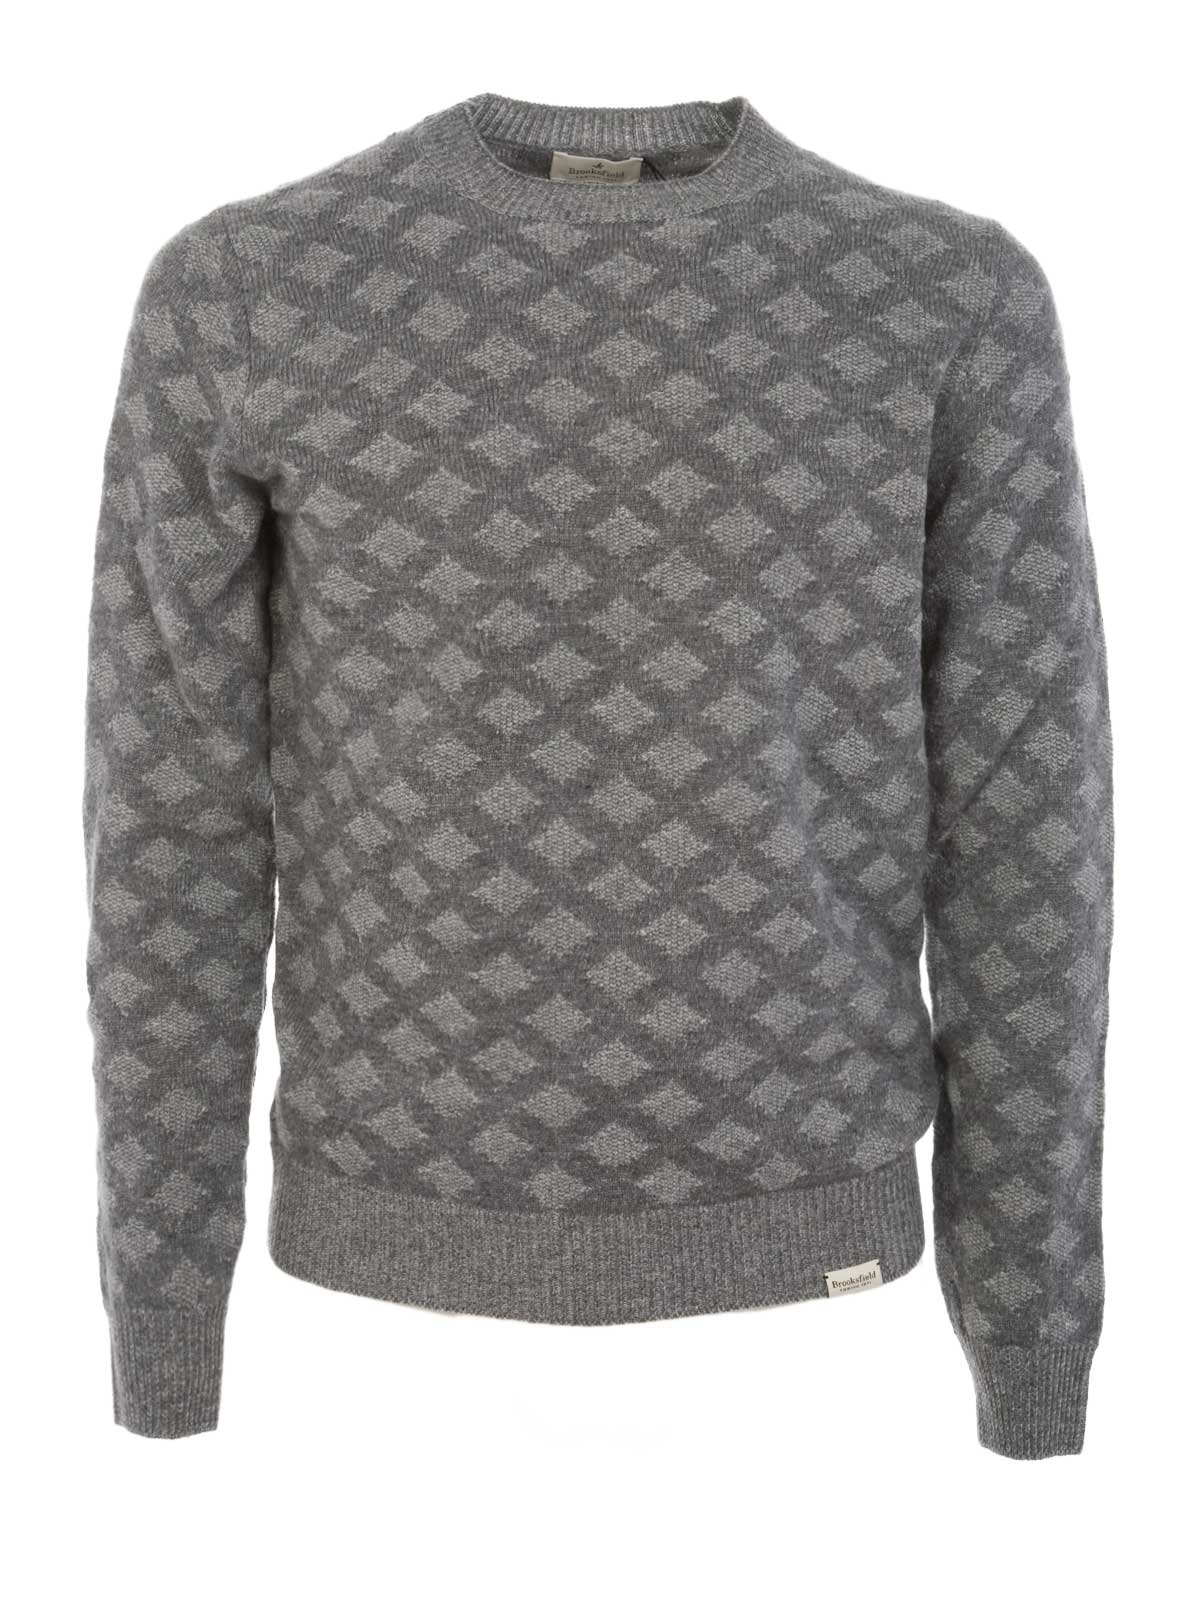 Picture of BROOKSFIELD | Diamonds Crewneck Sweater